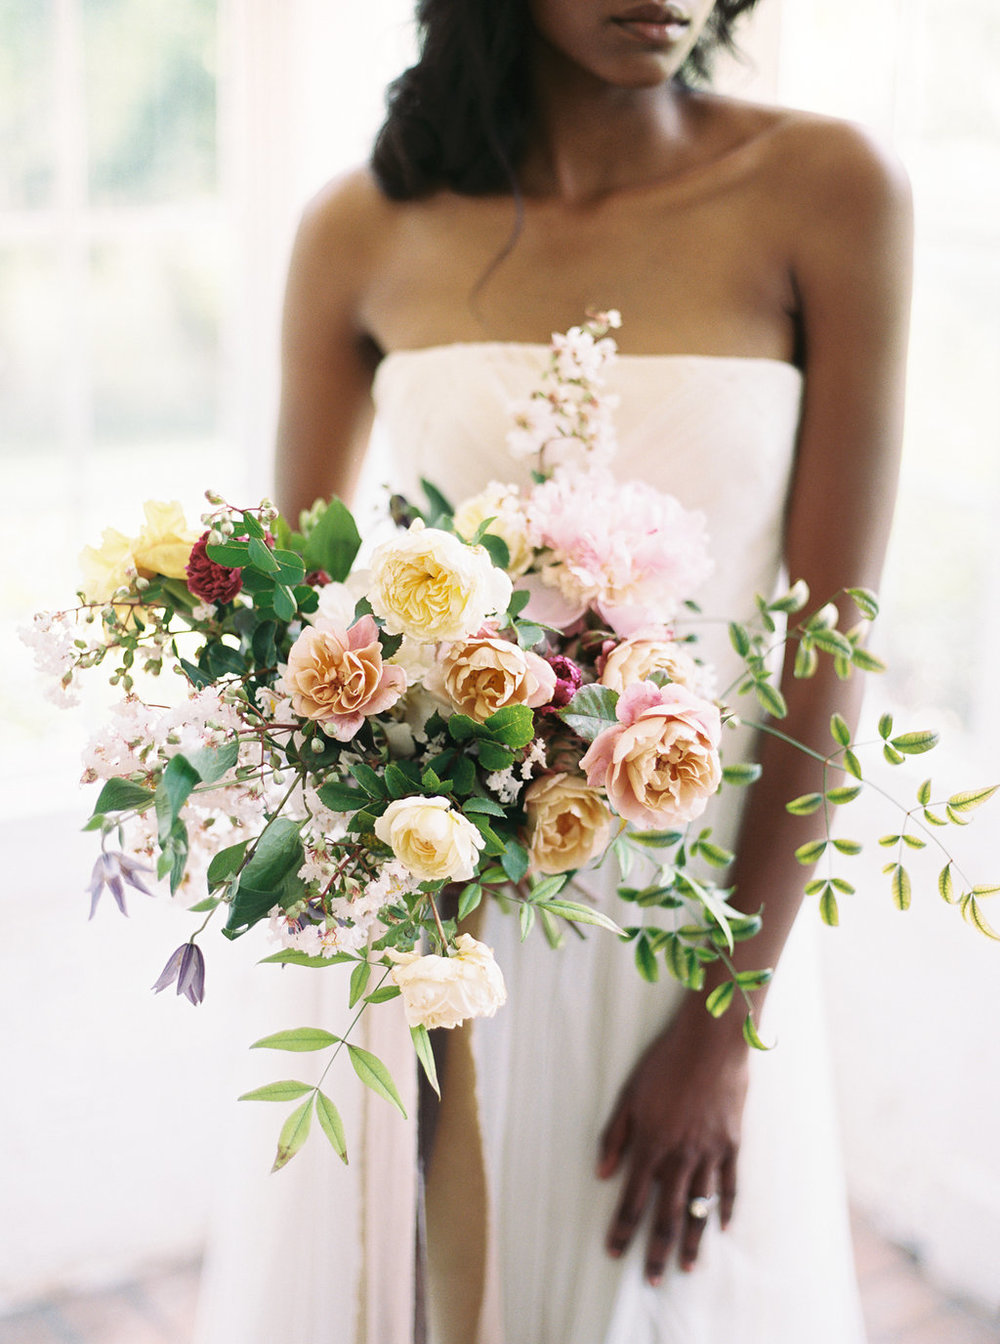 bridal bouquet | follow us on instagram: @ thewildflowers_com